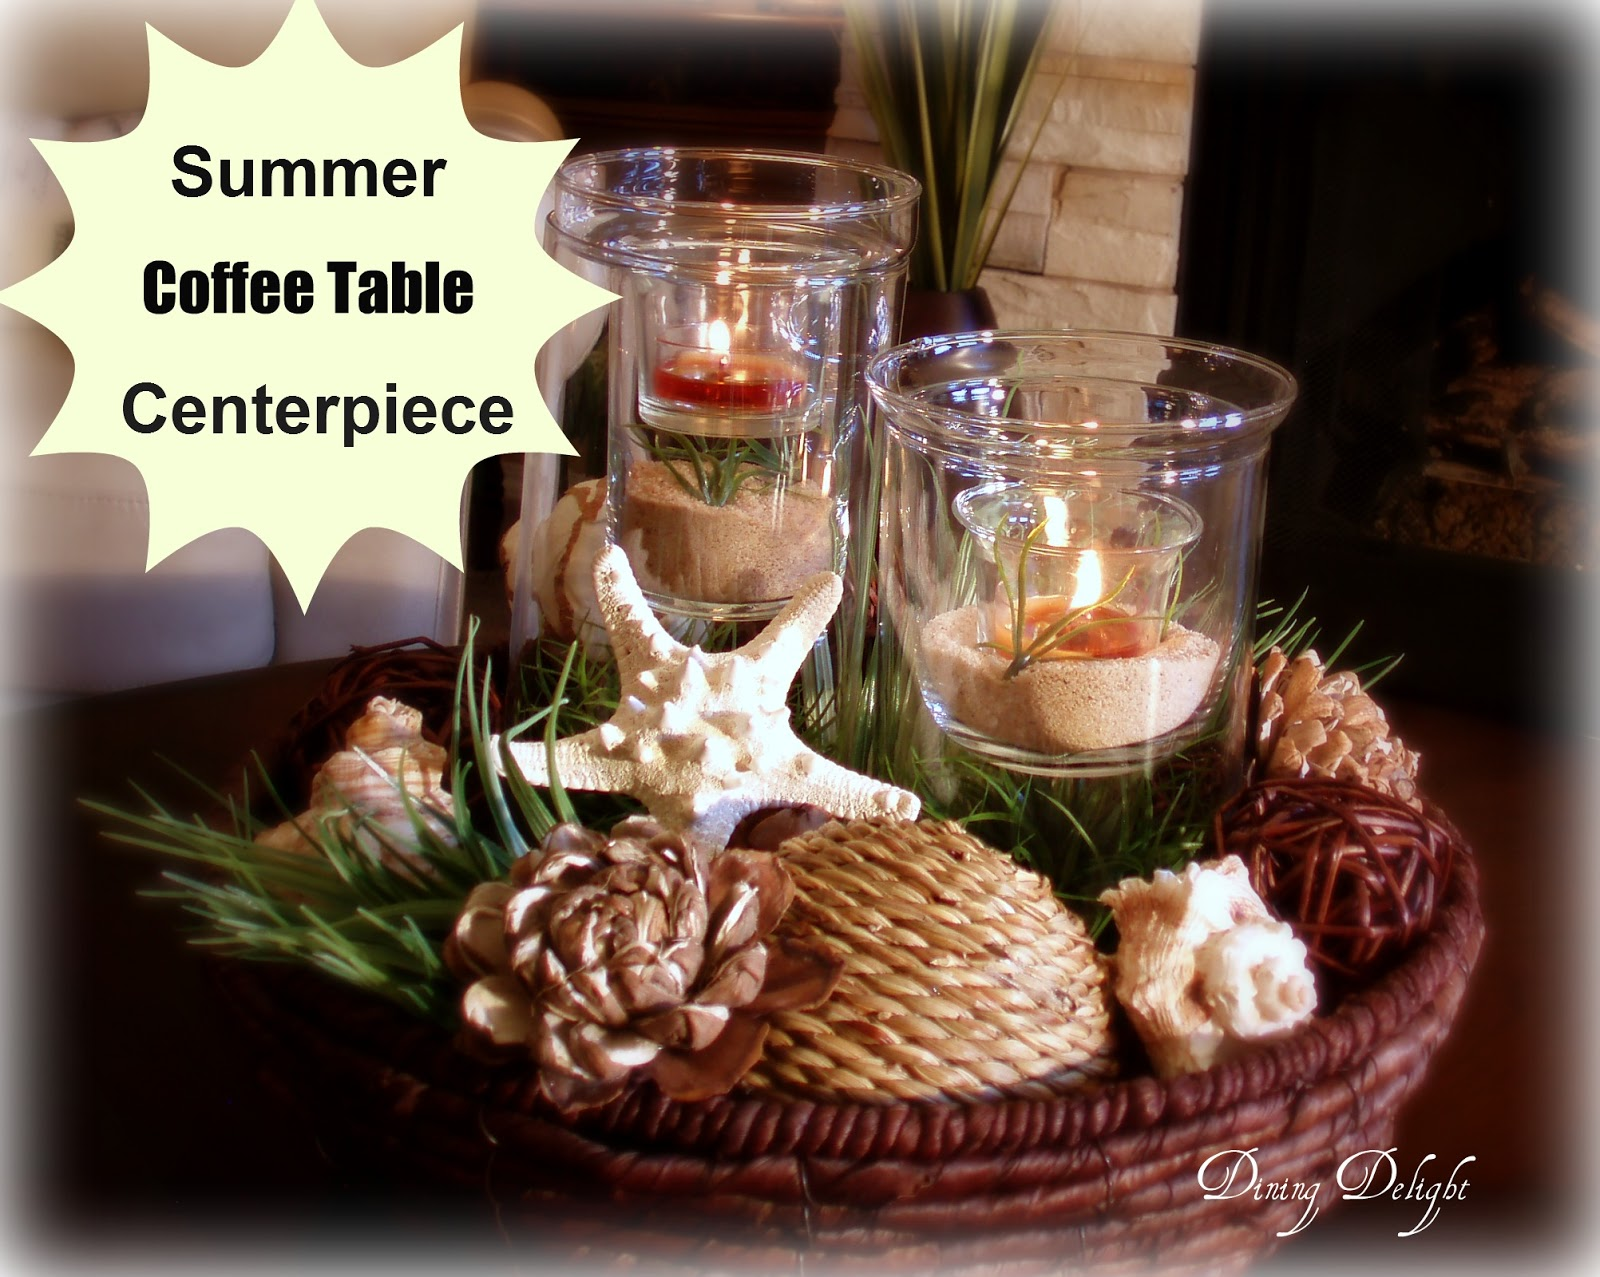 Centerpiece For Summer : Dining delight summer centerpiece for the coffee table